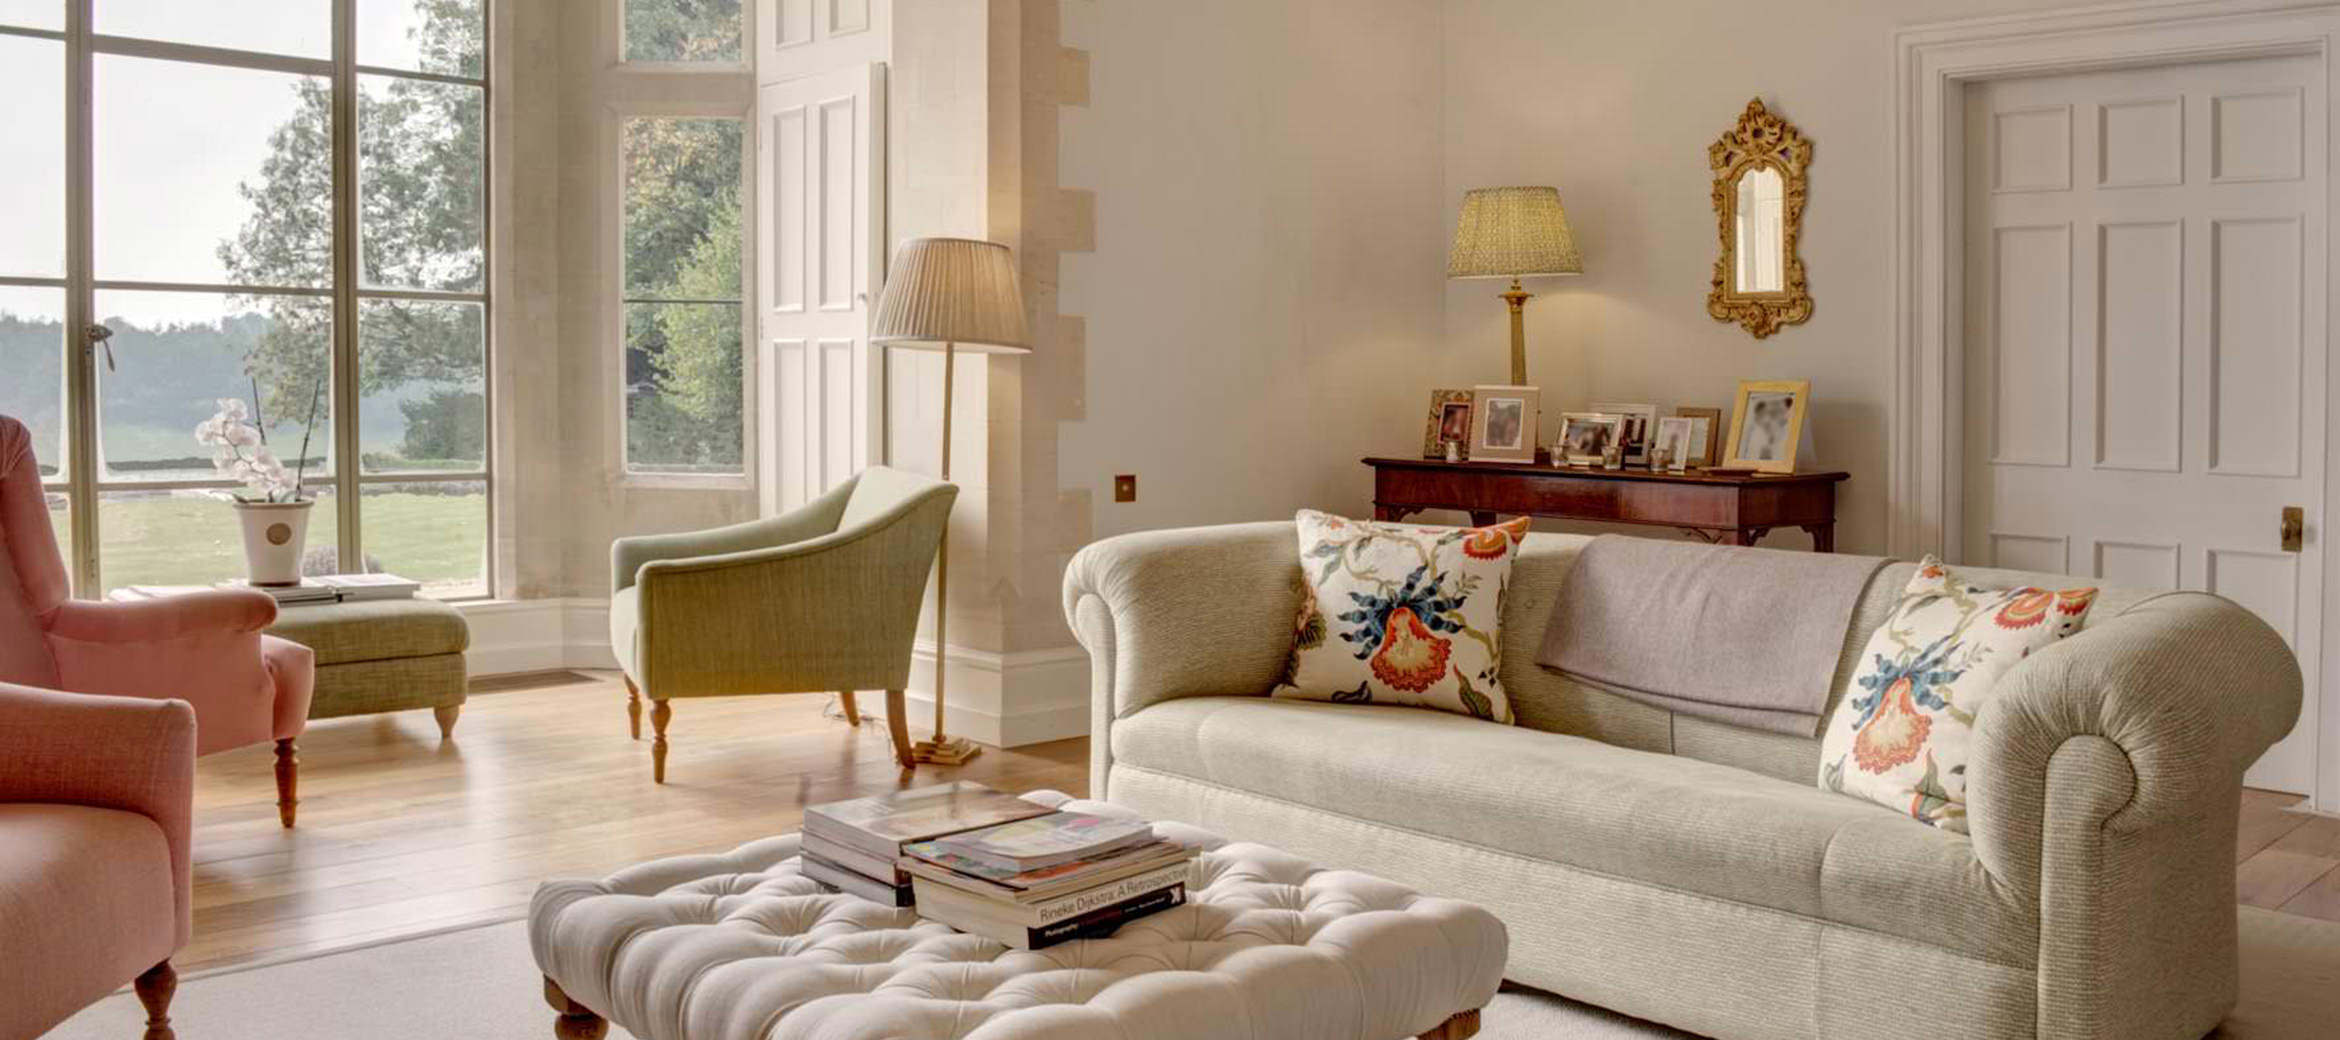 luxury-cotswold-august-house-1059-lcr